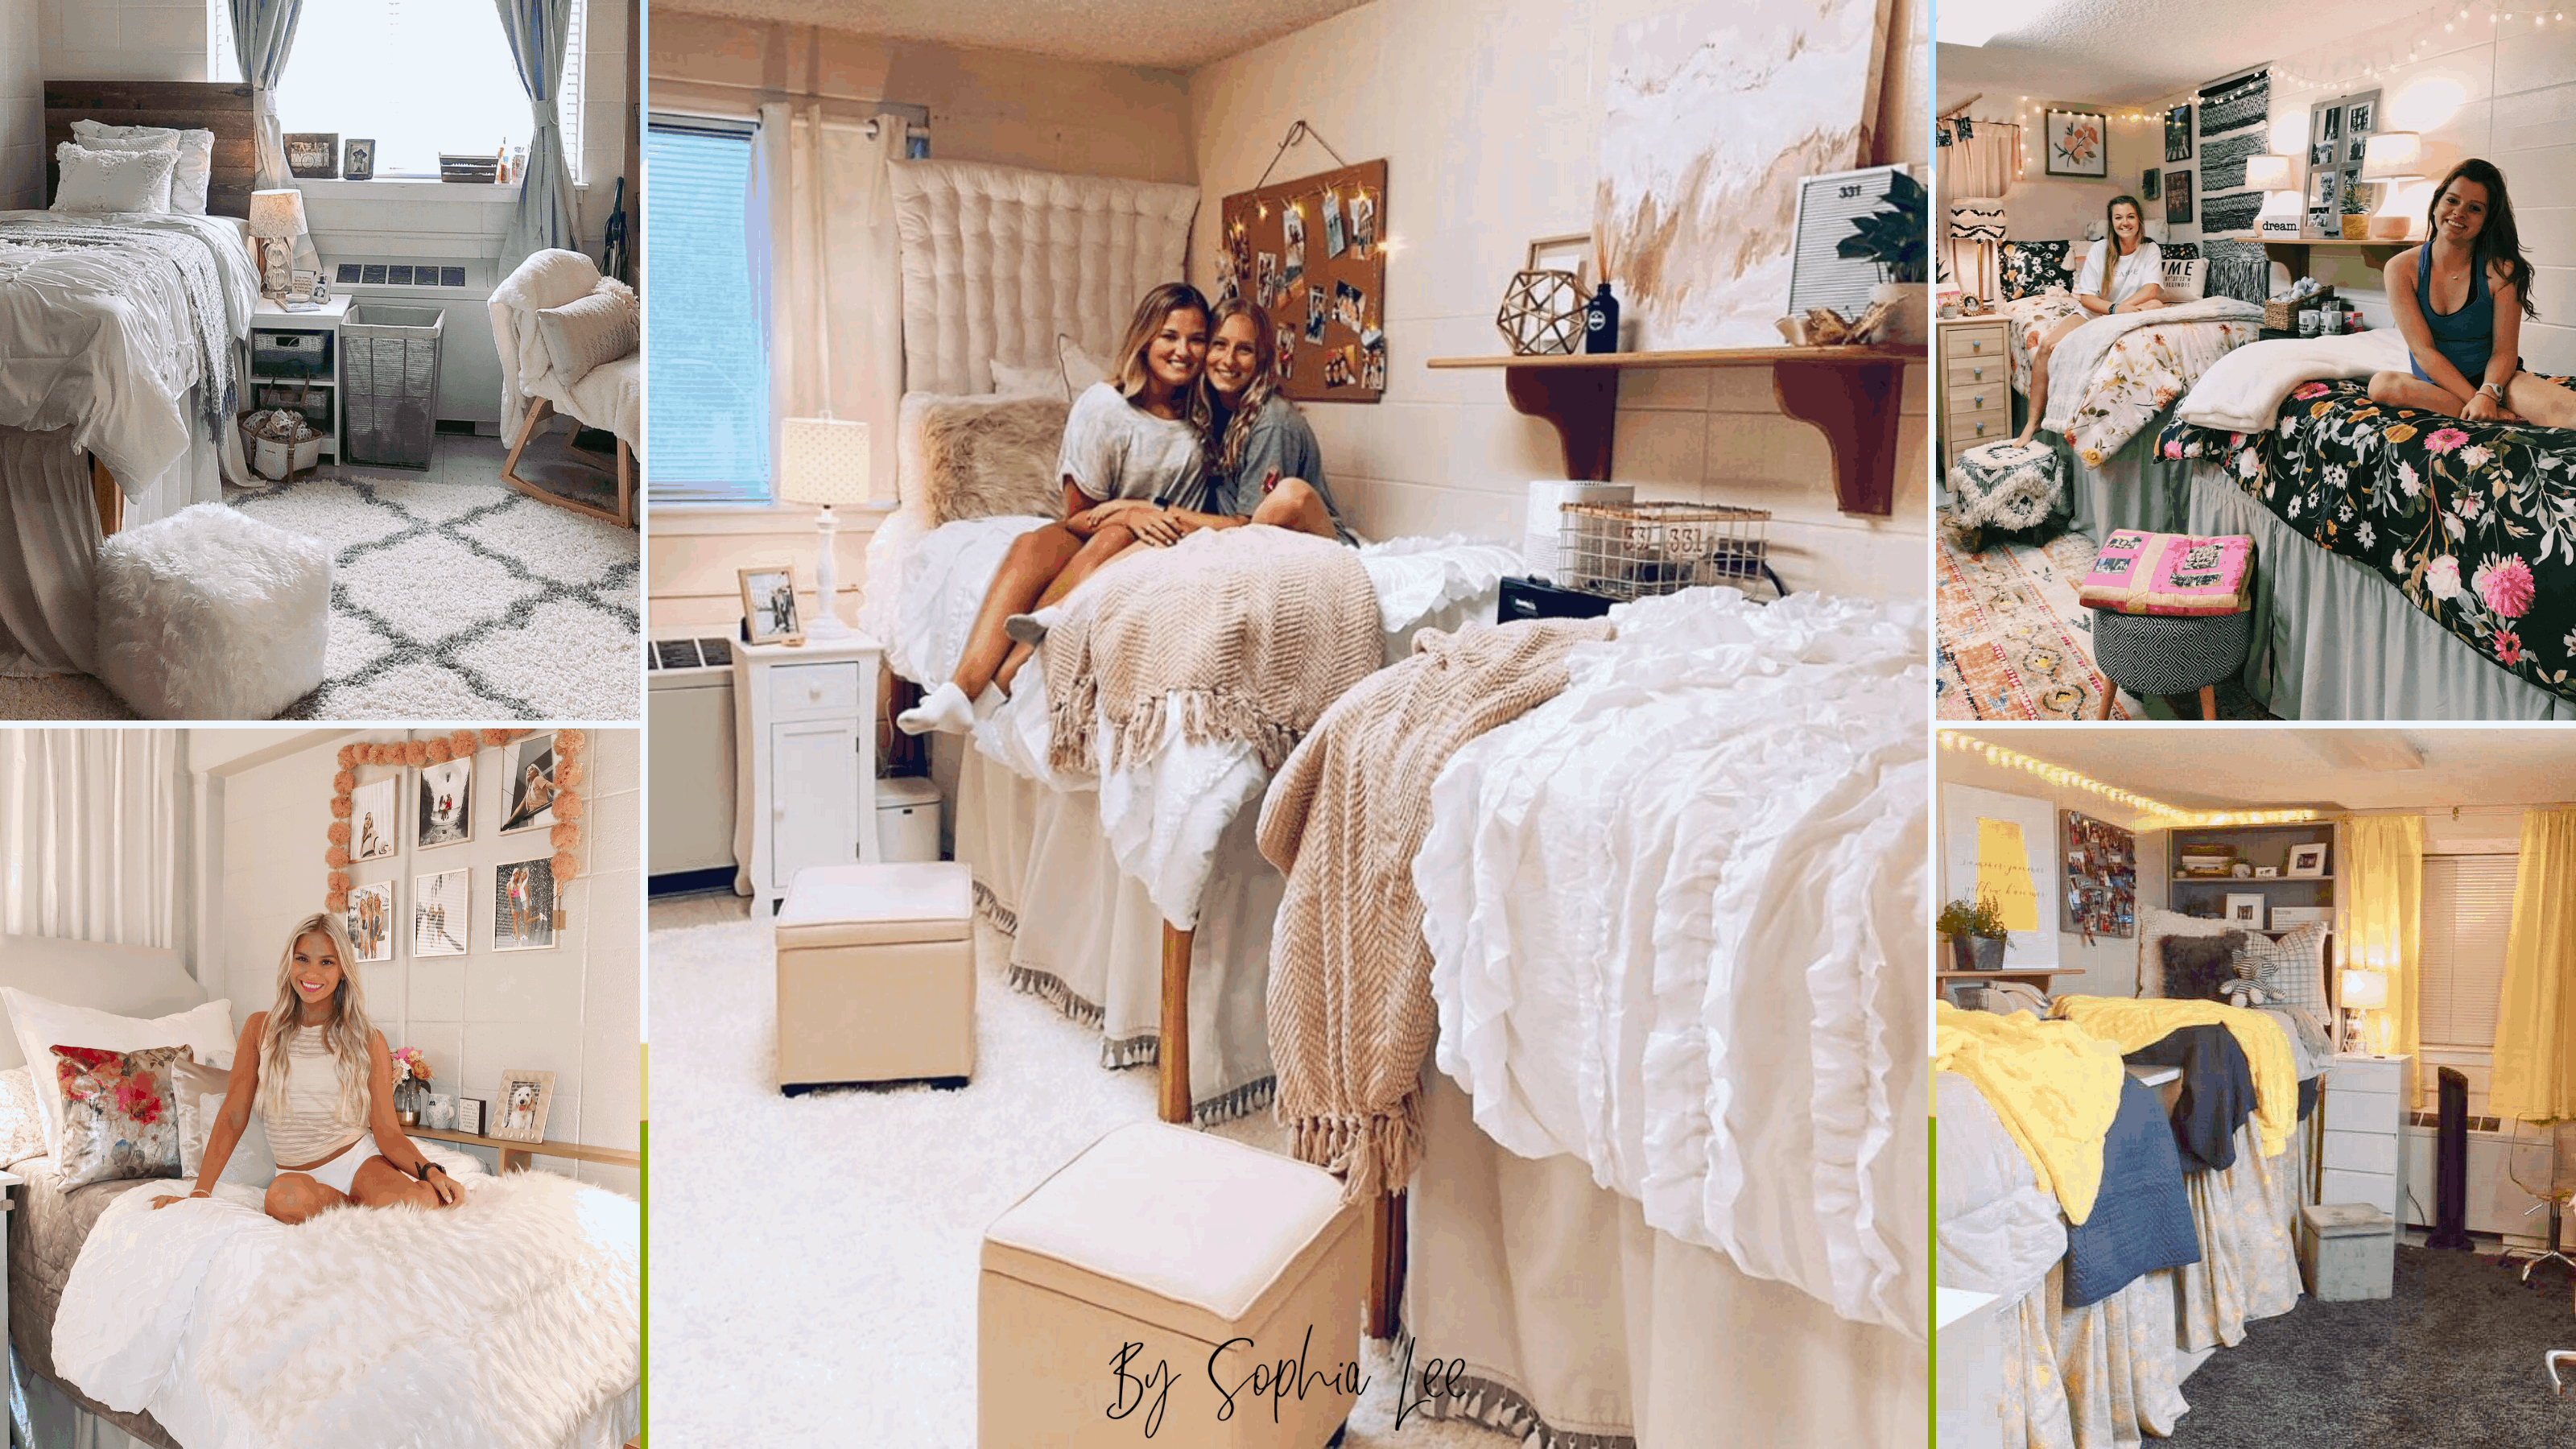 26 Cutest Dorm Decor Ideas That Are Totally Instagram Worthy - By